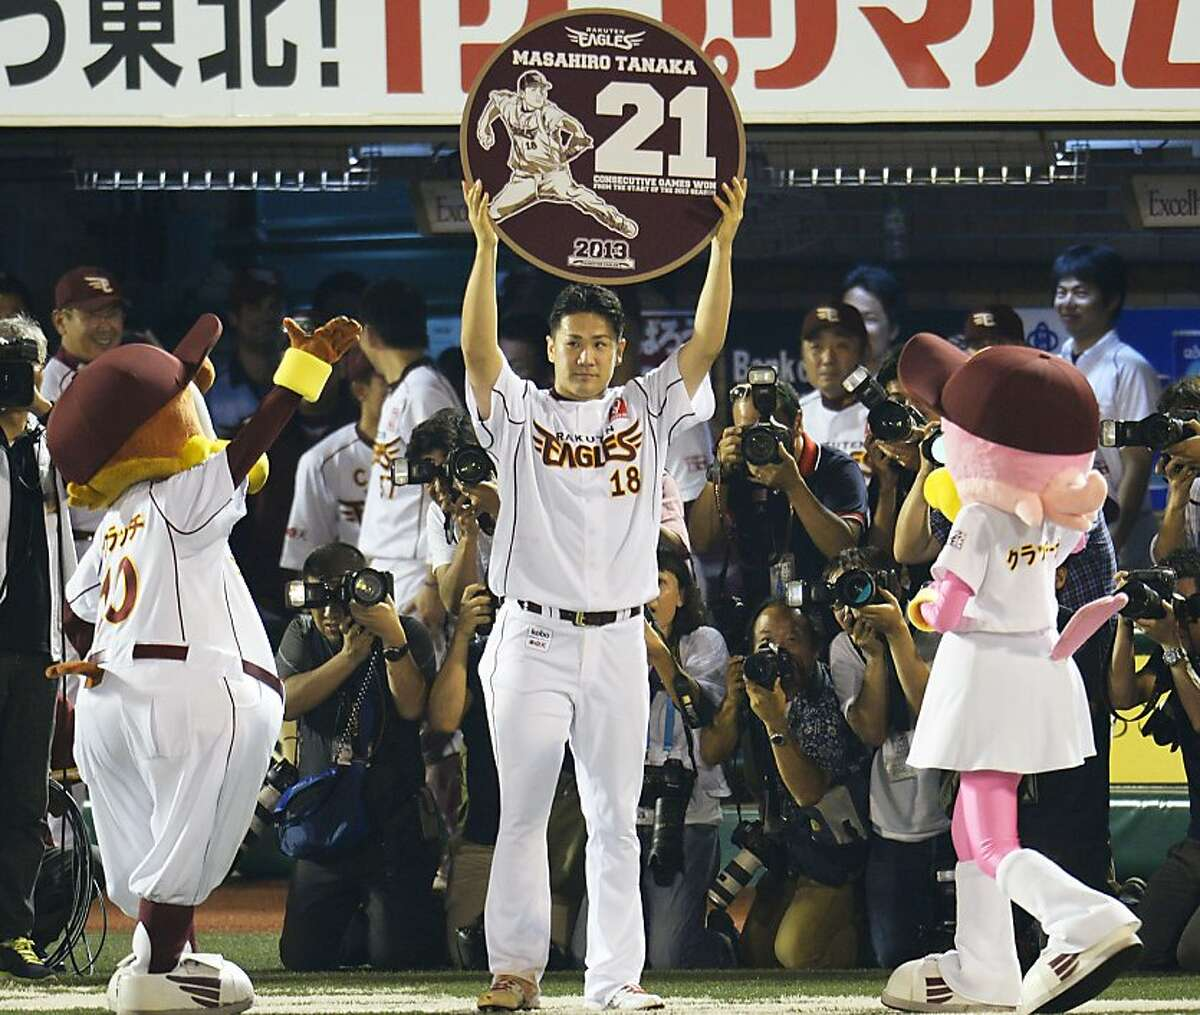 Rakuten Eagles pitcher Masahiro Tanaka raises a special plate written with 21 and his name after pitching against the Orix Buffaloes to win his 21st straight game, setting a new Japanese professional baseball record for consecutive victories in one season, at his team's home stadium in Sendai, northwestern Japan, Friday, Sept. 13, 2013. Tanaka improved to 21-0 on Friday after giving up two runs in a complete game in the Eagles' 6-2 win over the Buffaloes. The previous record of 20 was set in 1957 by Kazuhisa Inao. (AP Photo/Kyodo News) JAPAN OUT, MANDATORY CREDIT